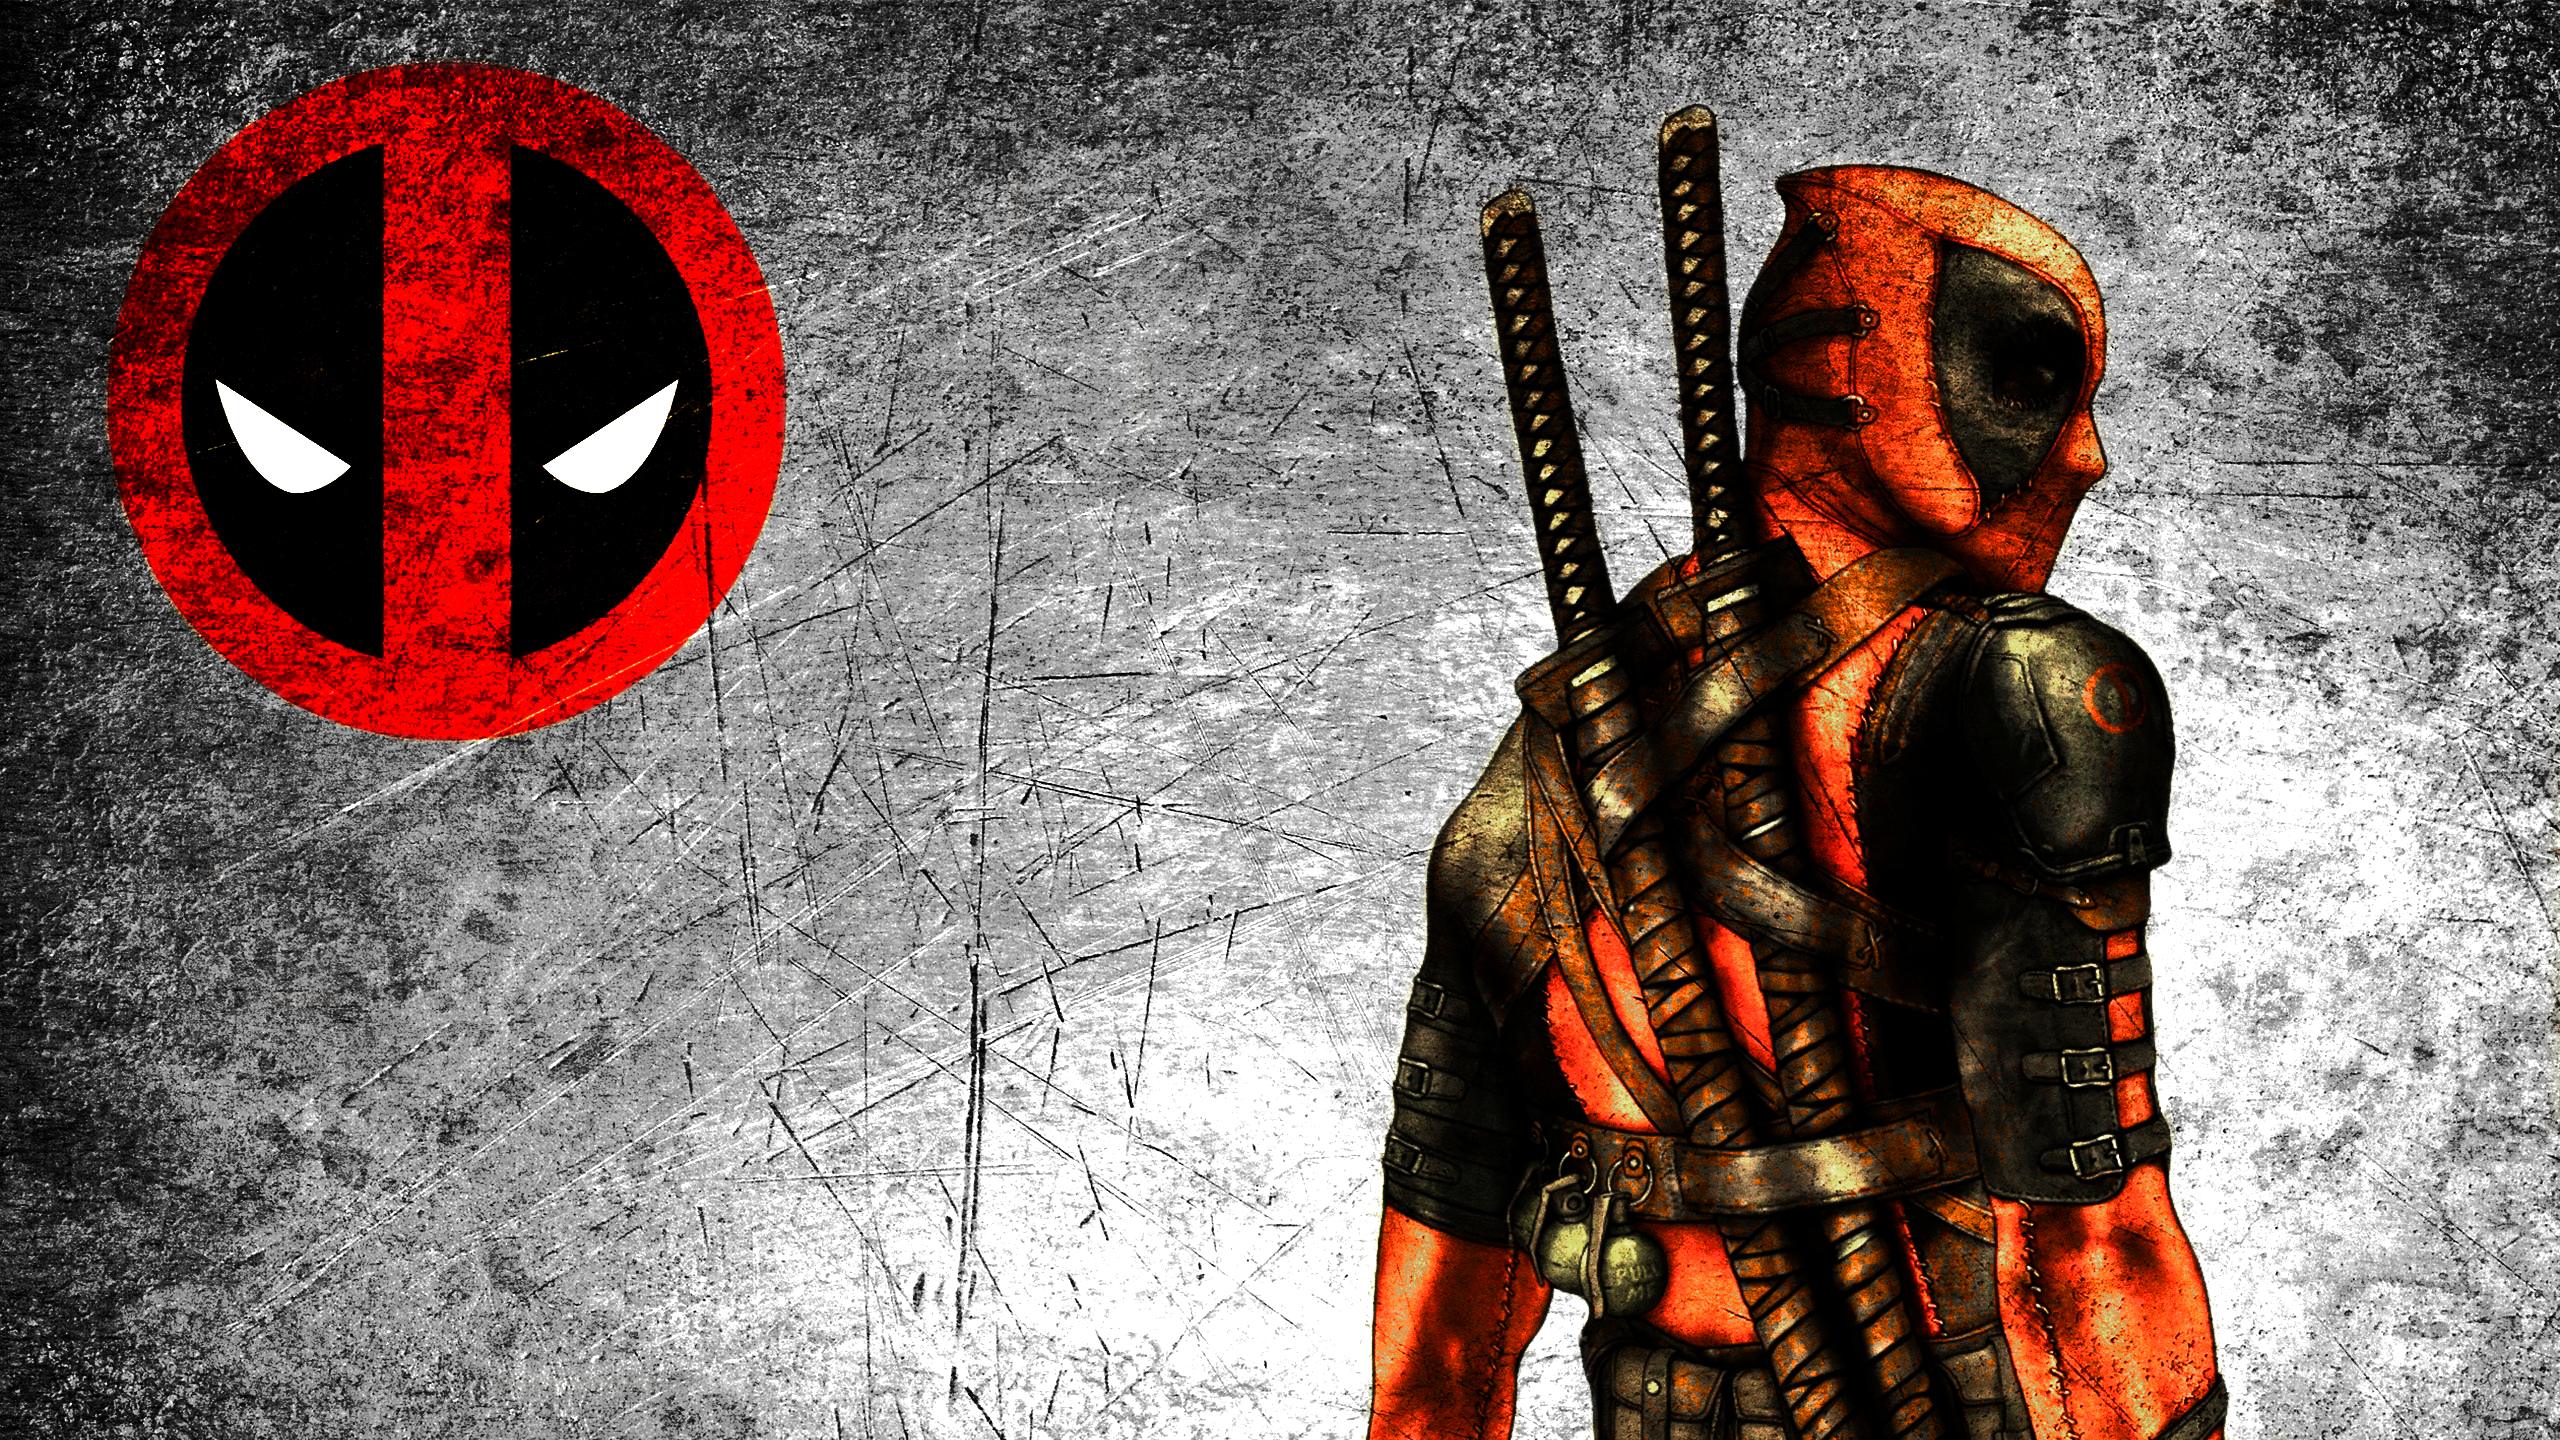 719 Deadpool HD Wallpapers | Backgrounds - Wallpaper Abyss